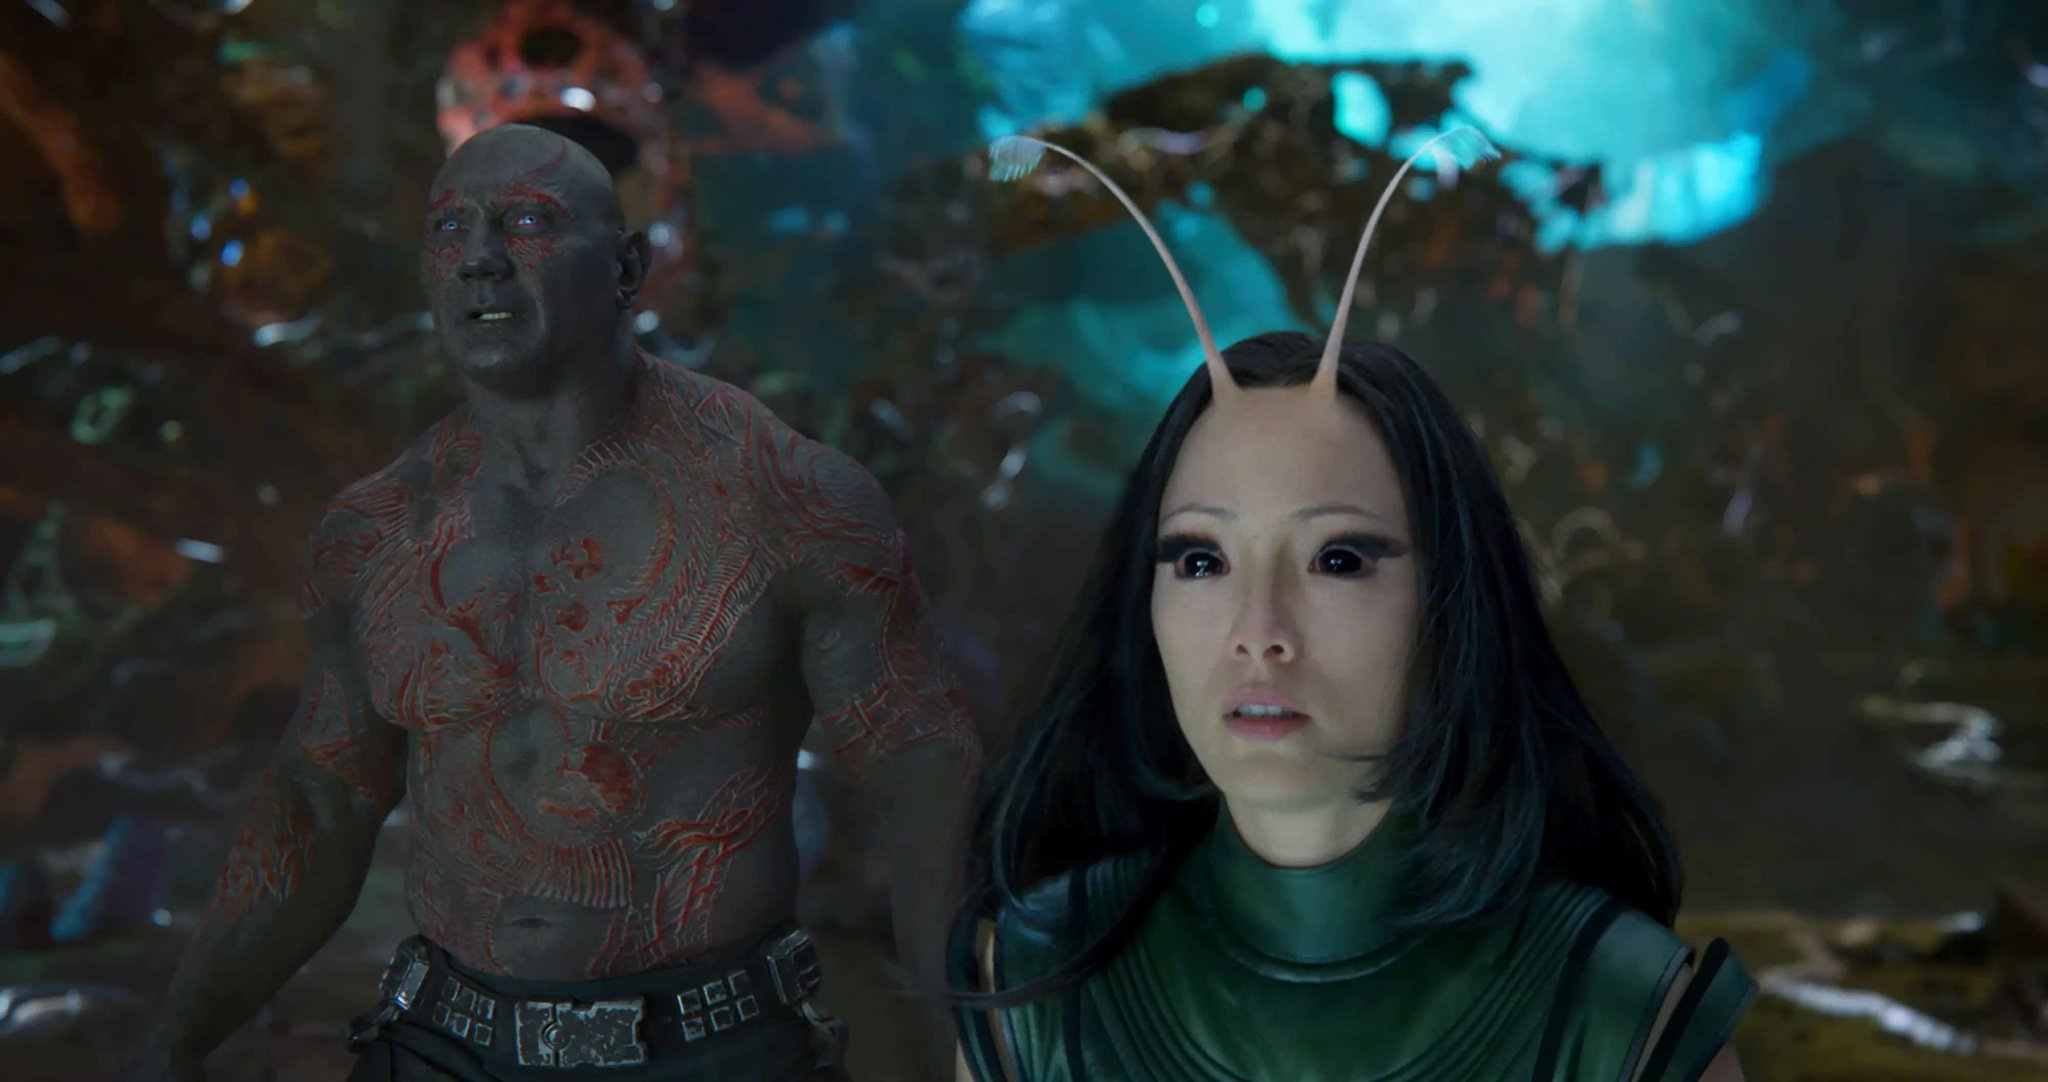 New Guardians of the Galaxy Vol. 2 Photos Revealed